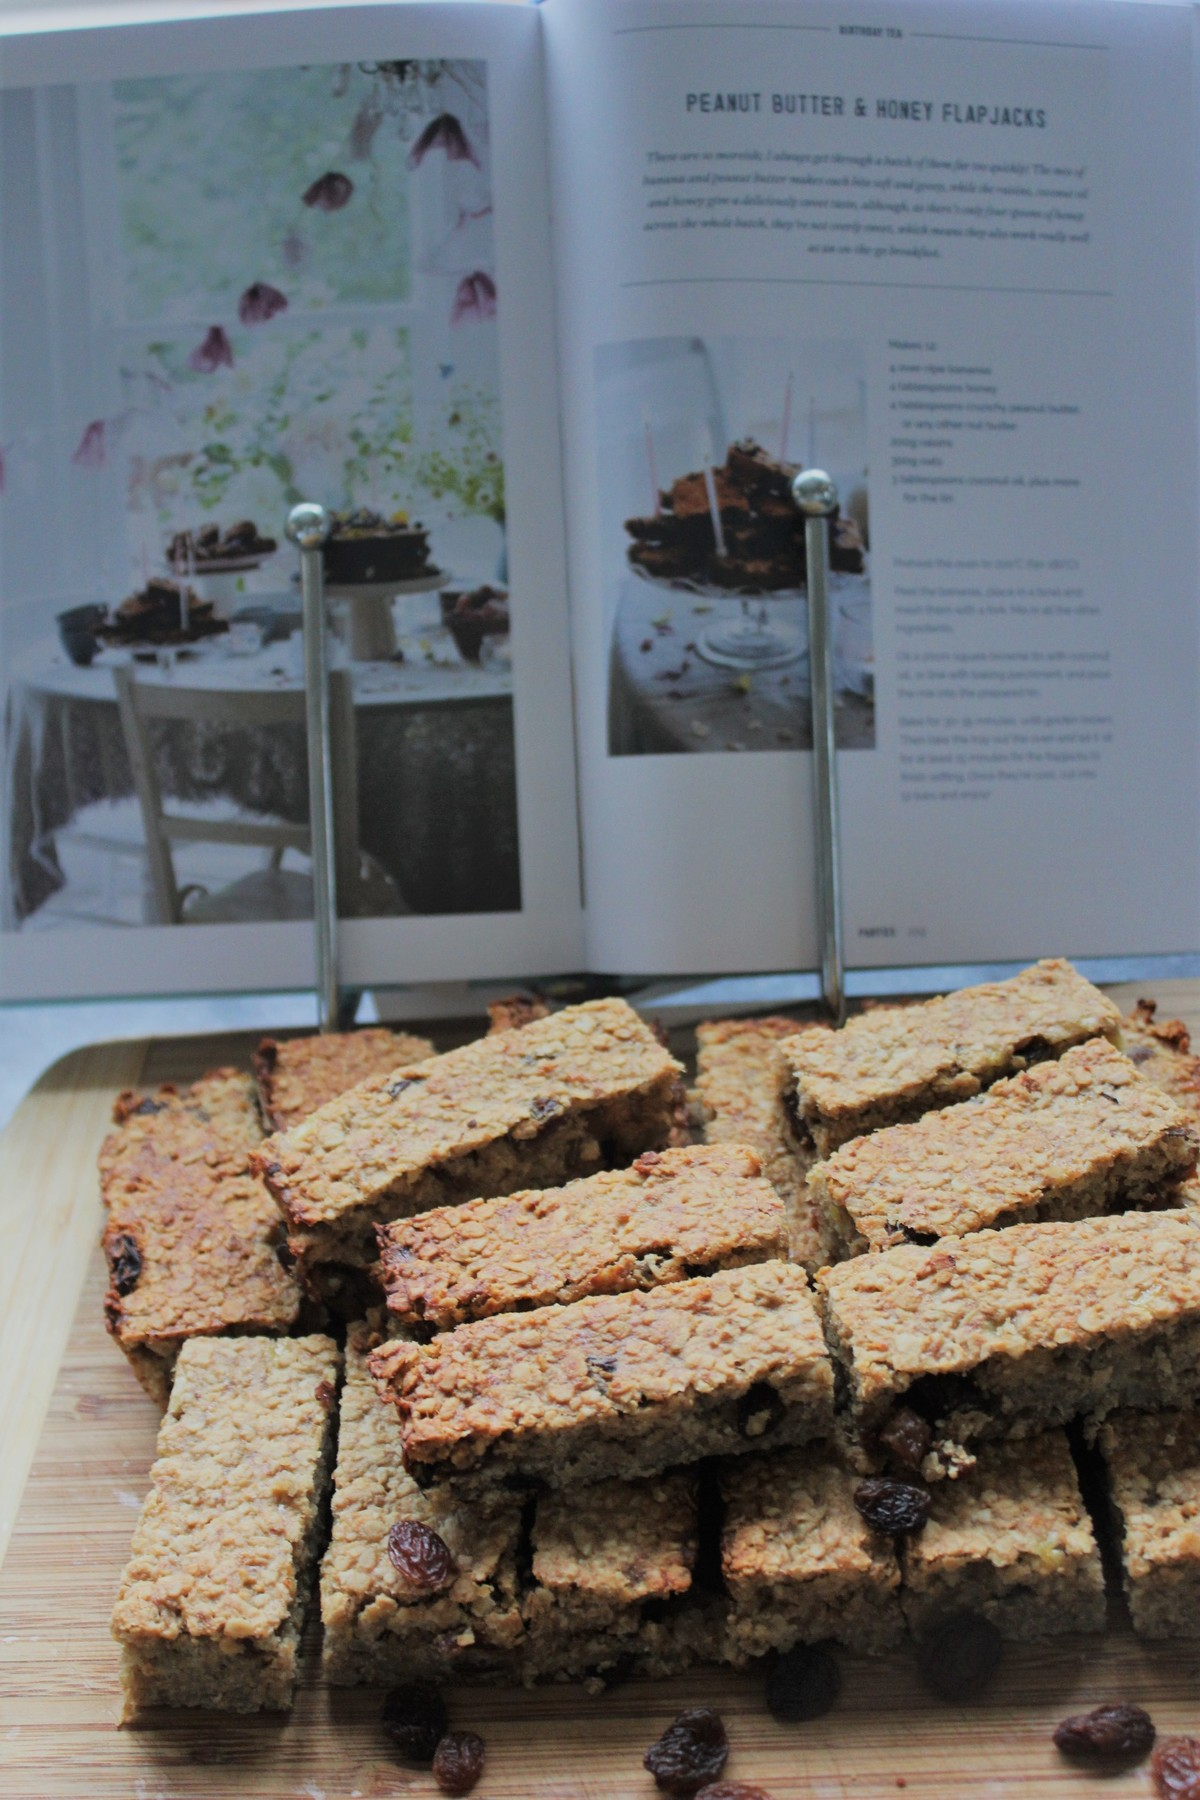 Deliciously Ella's Peanut Butter and Honey Flapjacks